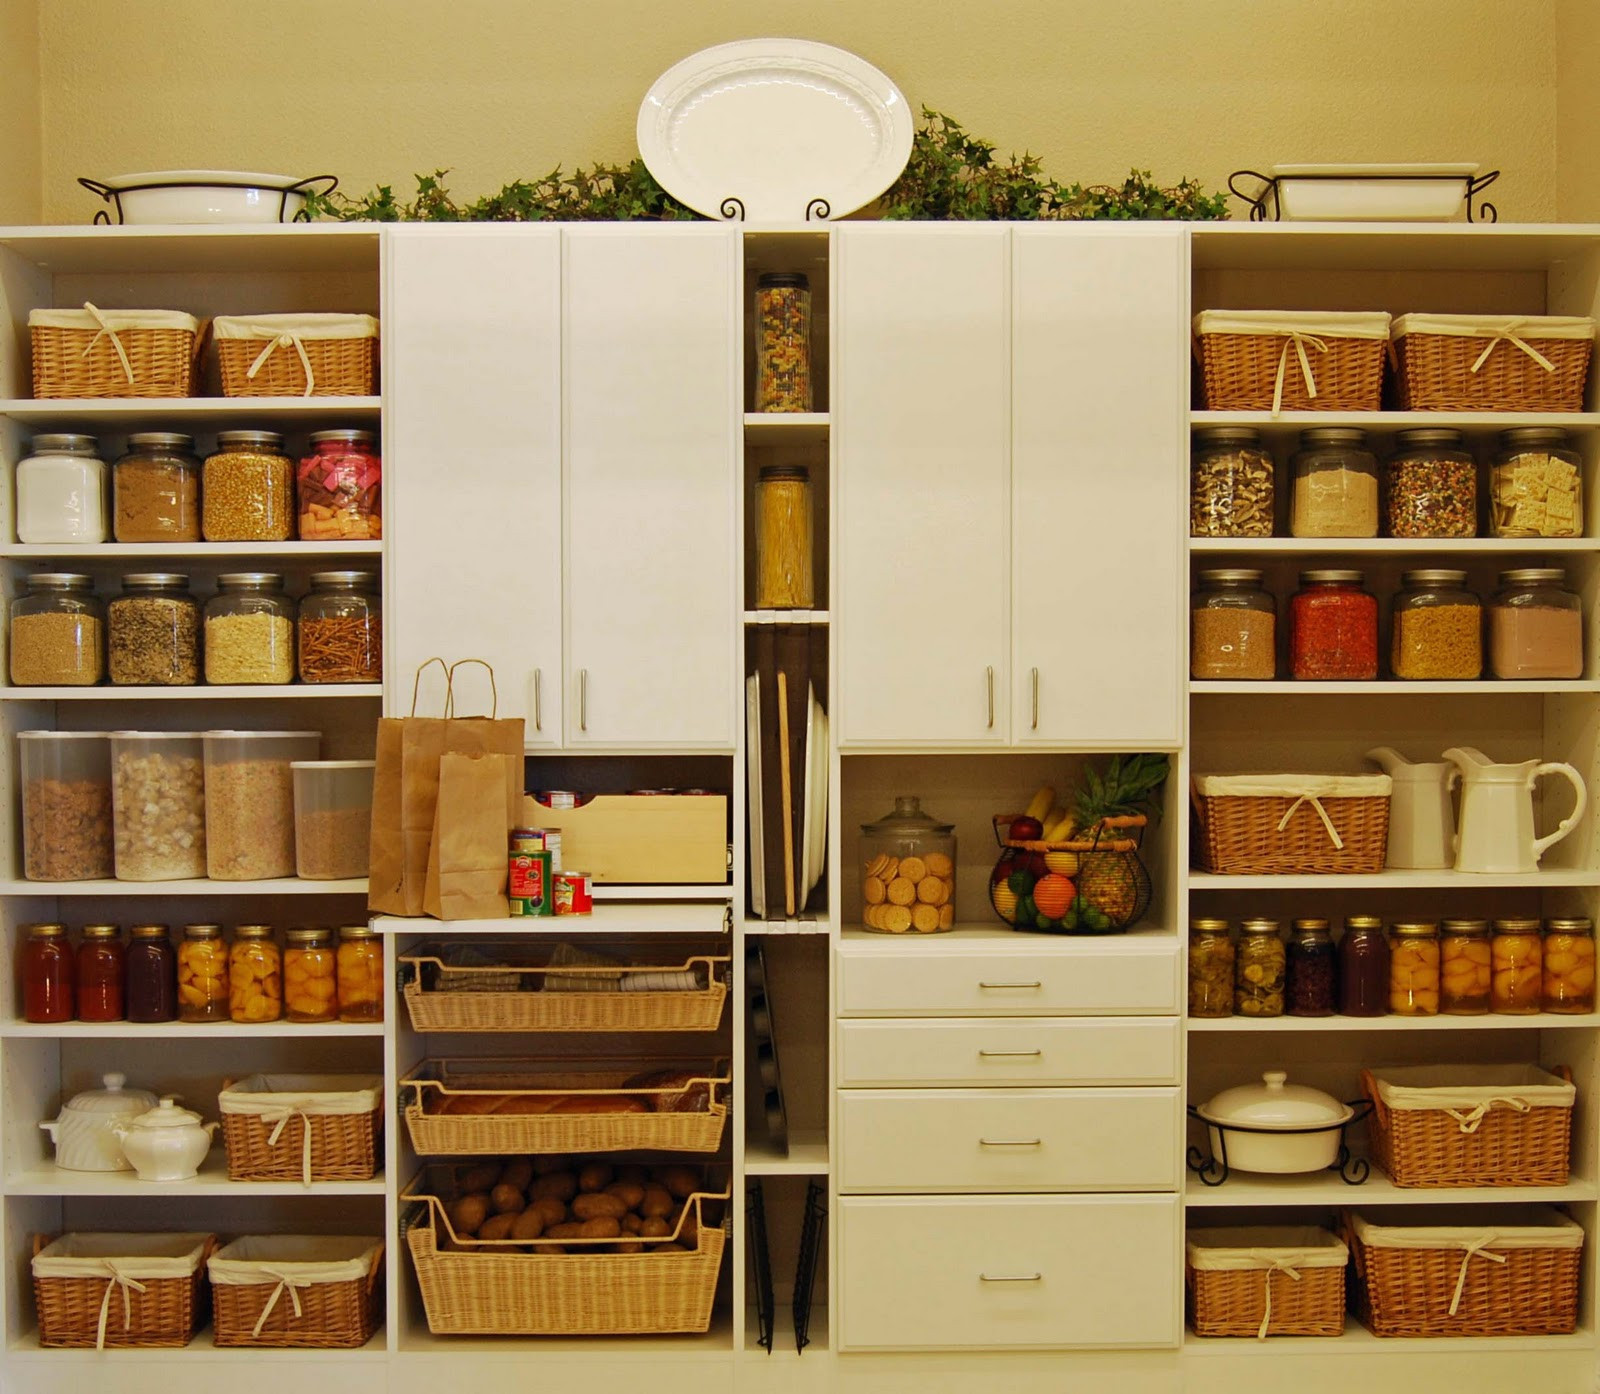 Best ideas about Pantry Closet Ideas . Save or Pin 15 Kitchen Pantry Ideas With Form And Function Now.